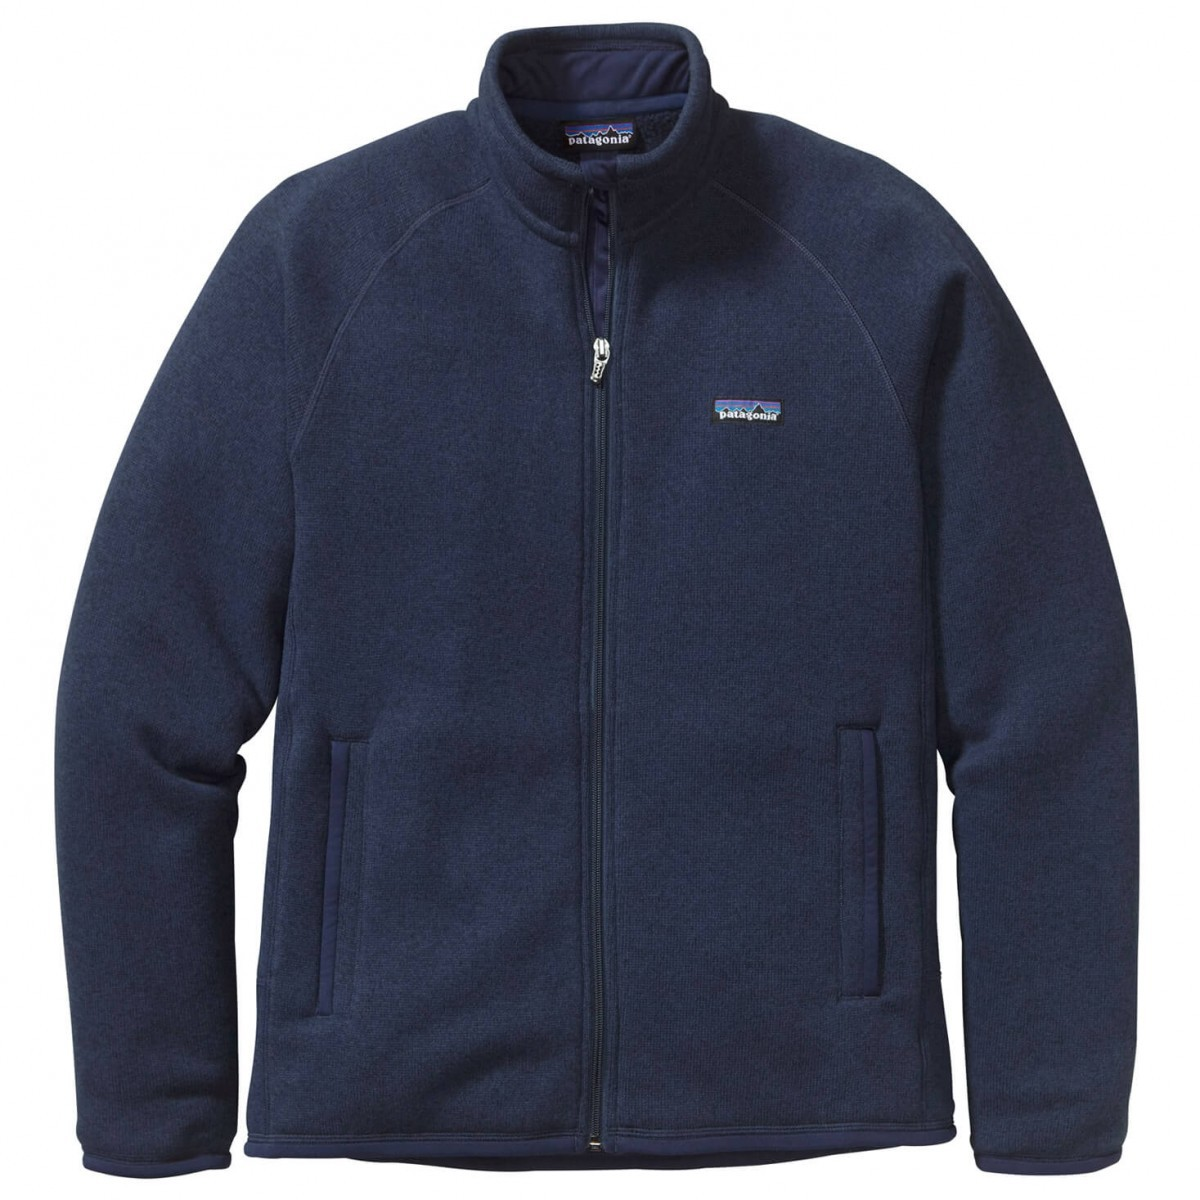 パタゴニア Better Sweater Jacket (Classic Navy)